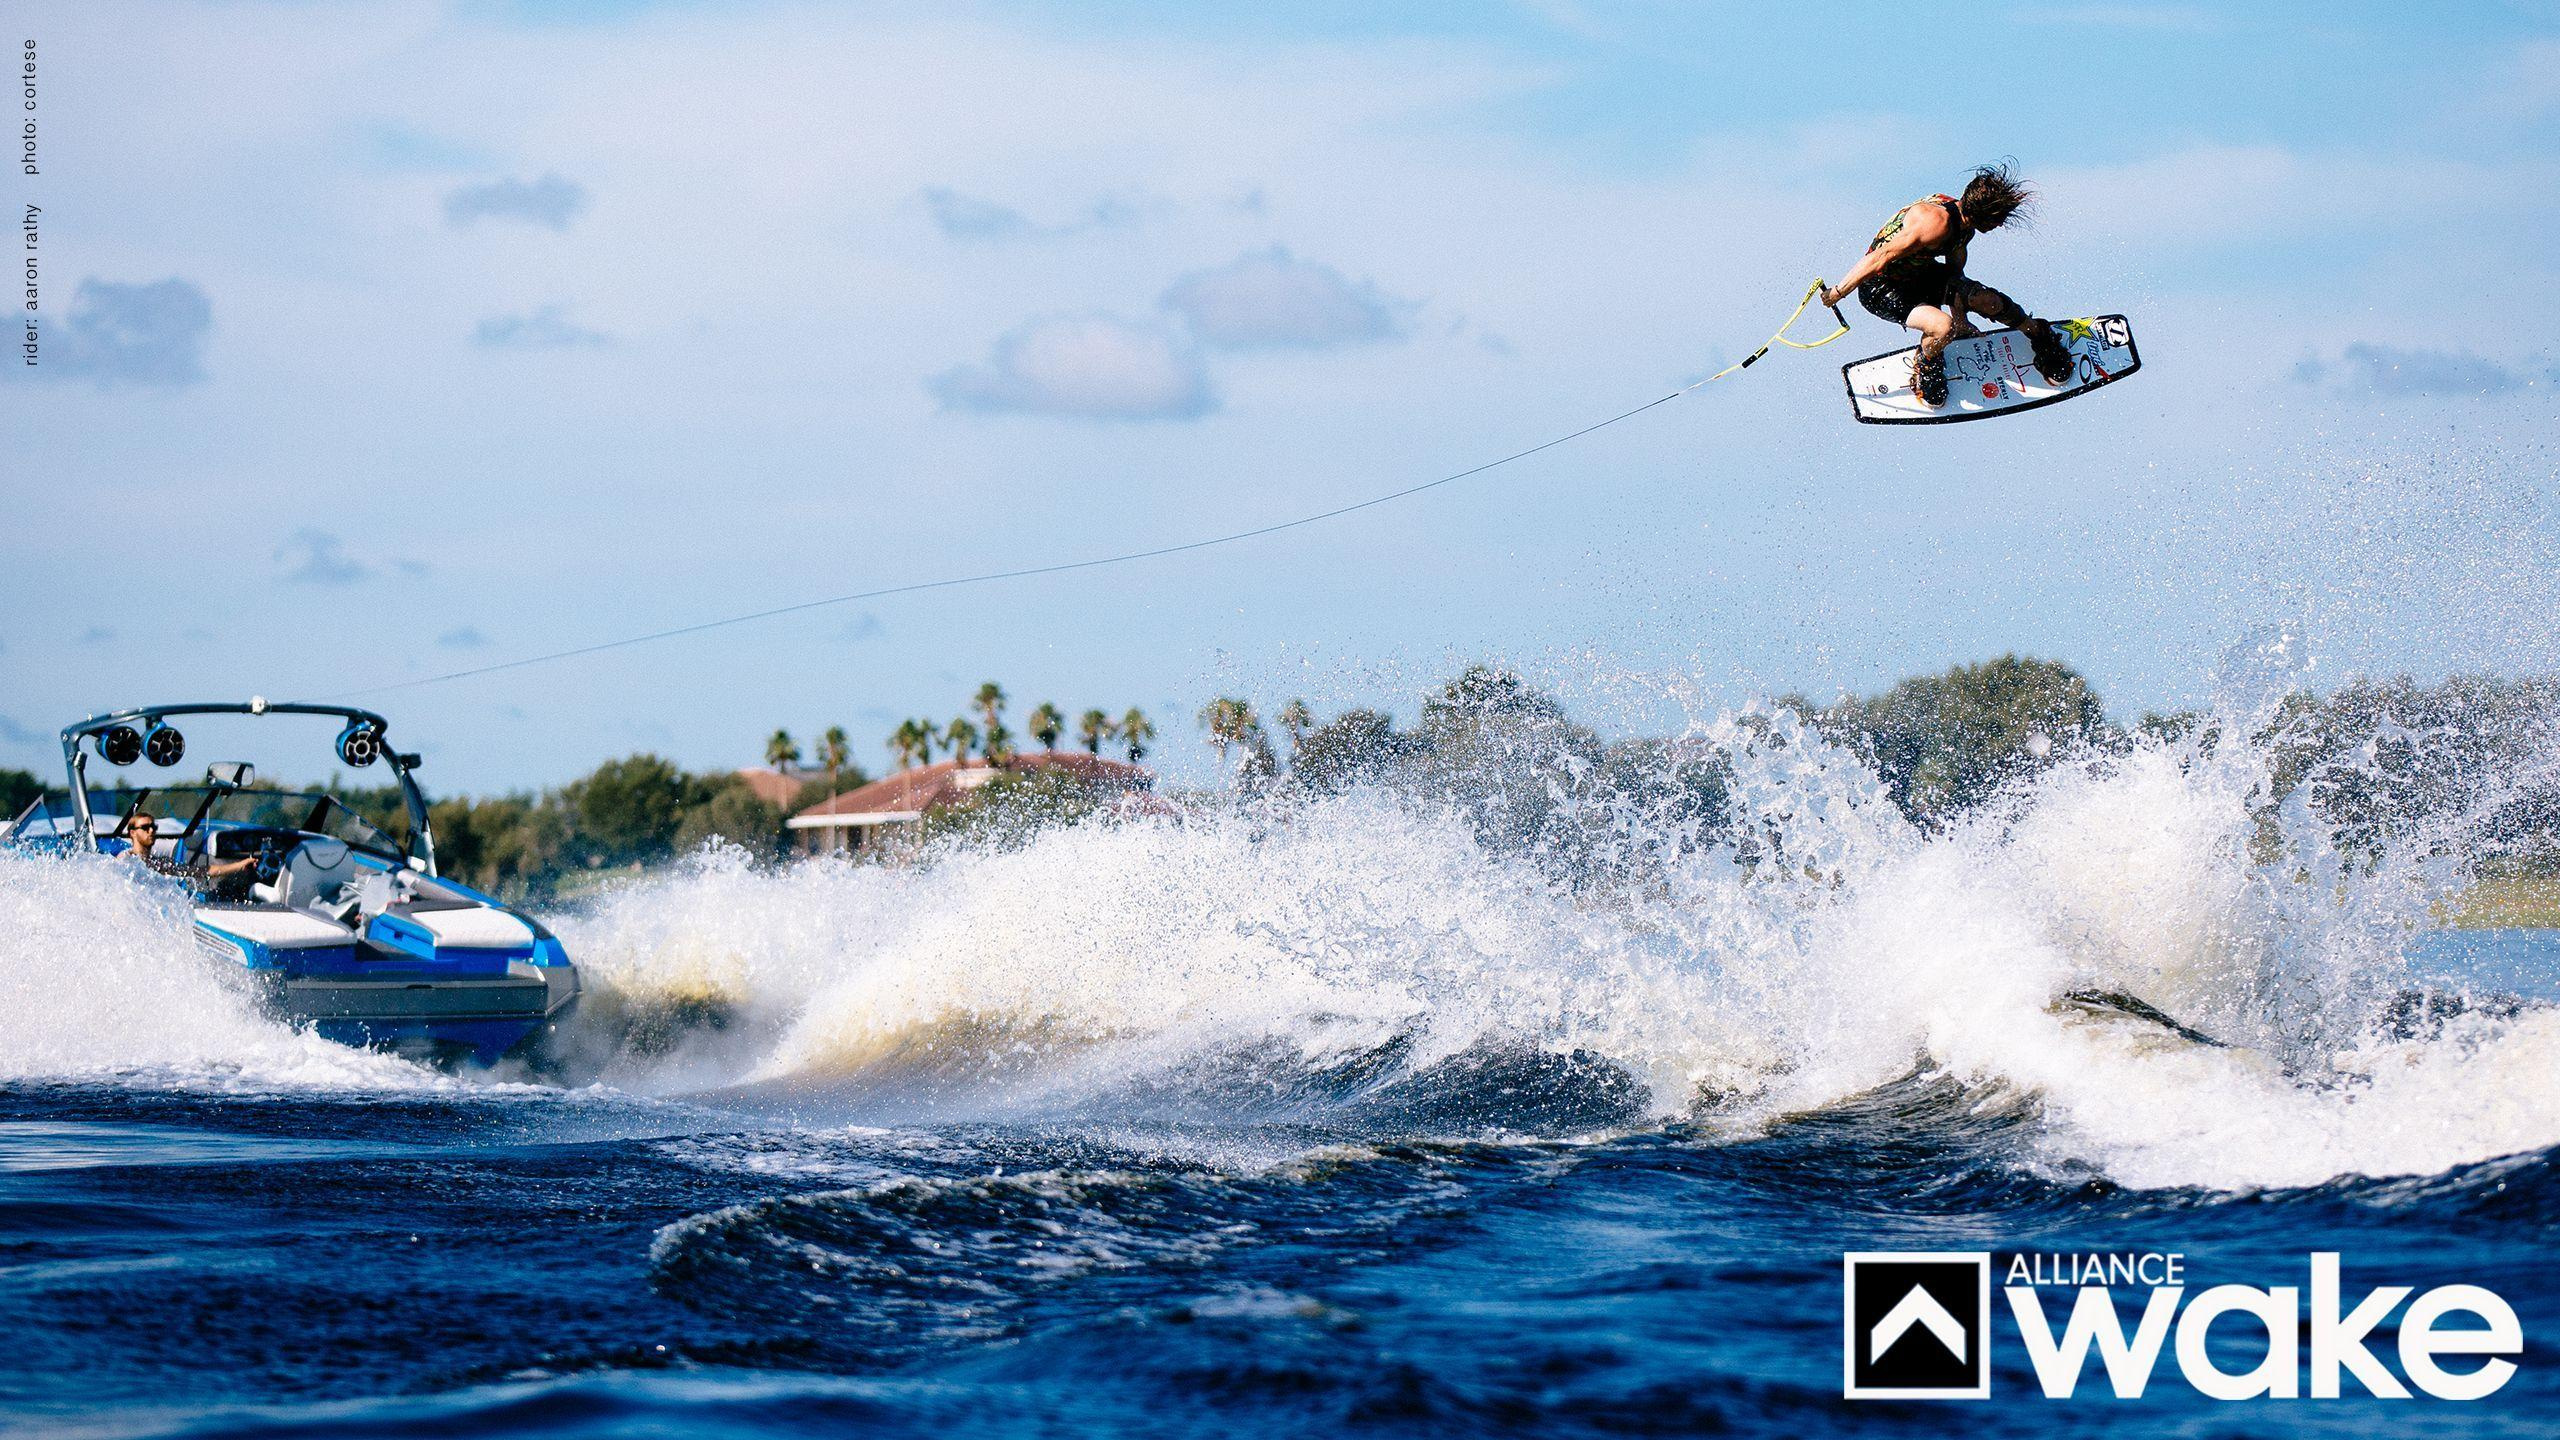 Wallpapers: Silhouette 2560×1440 Wakeboard Wallpapers